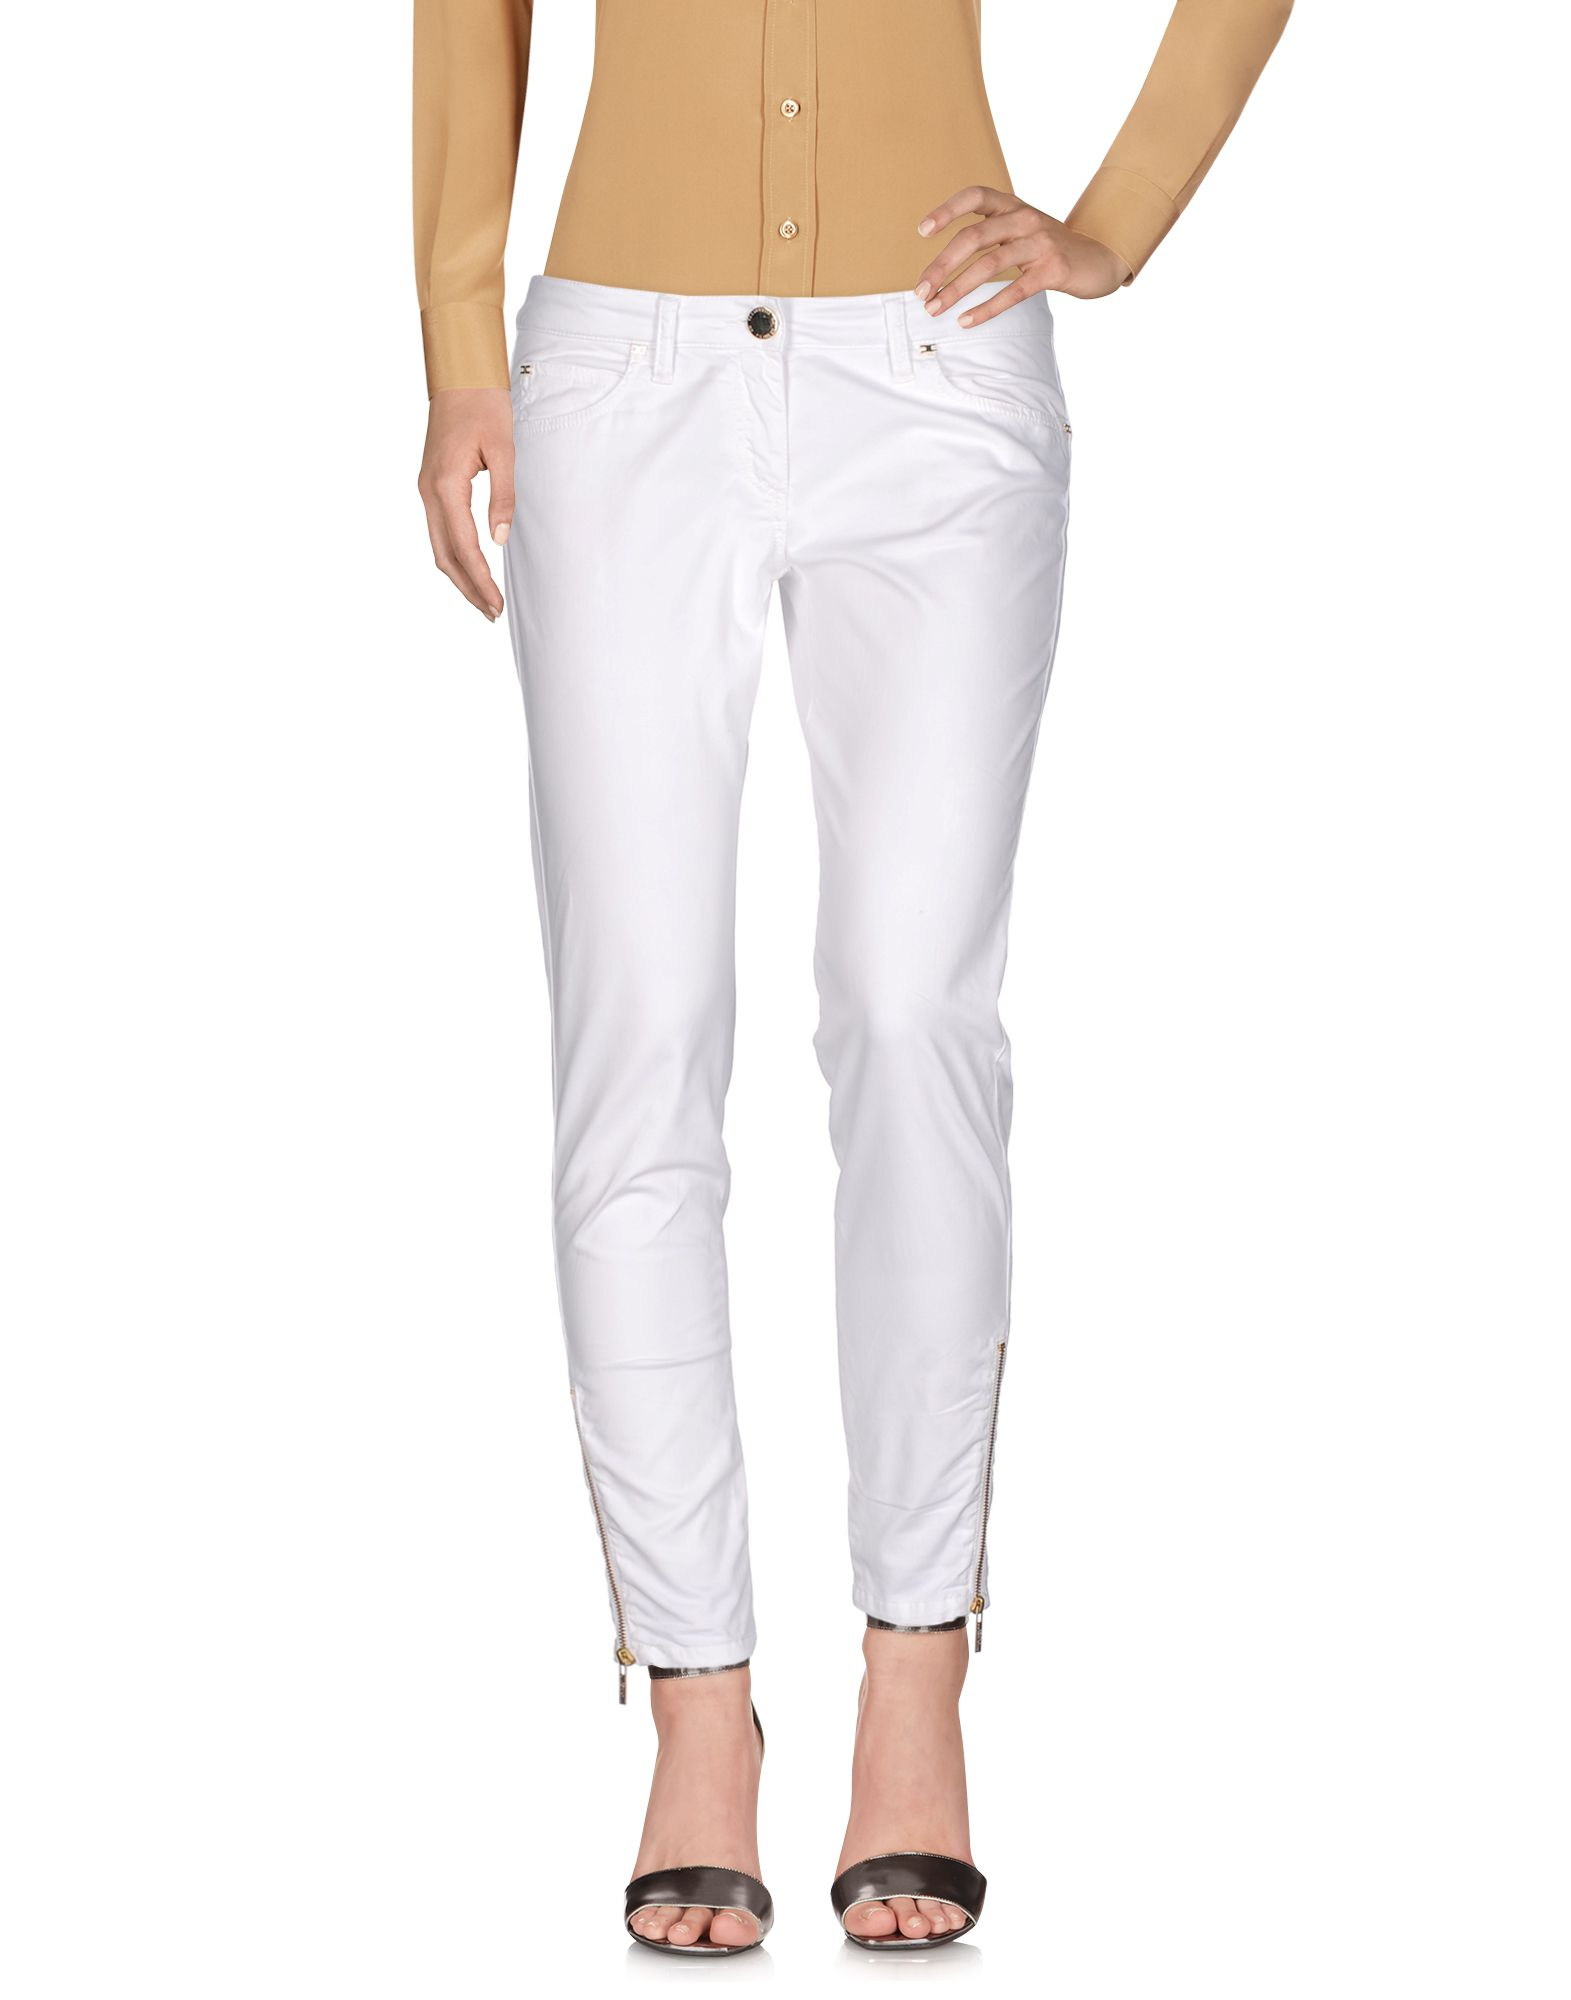 Pantalone Elisabetta Franchi Jeans For Celyn B. Donna - Acquista online su qB2CO5